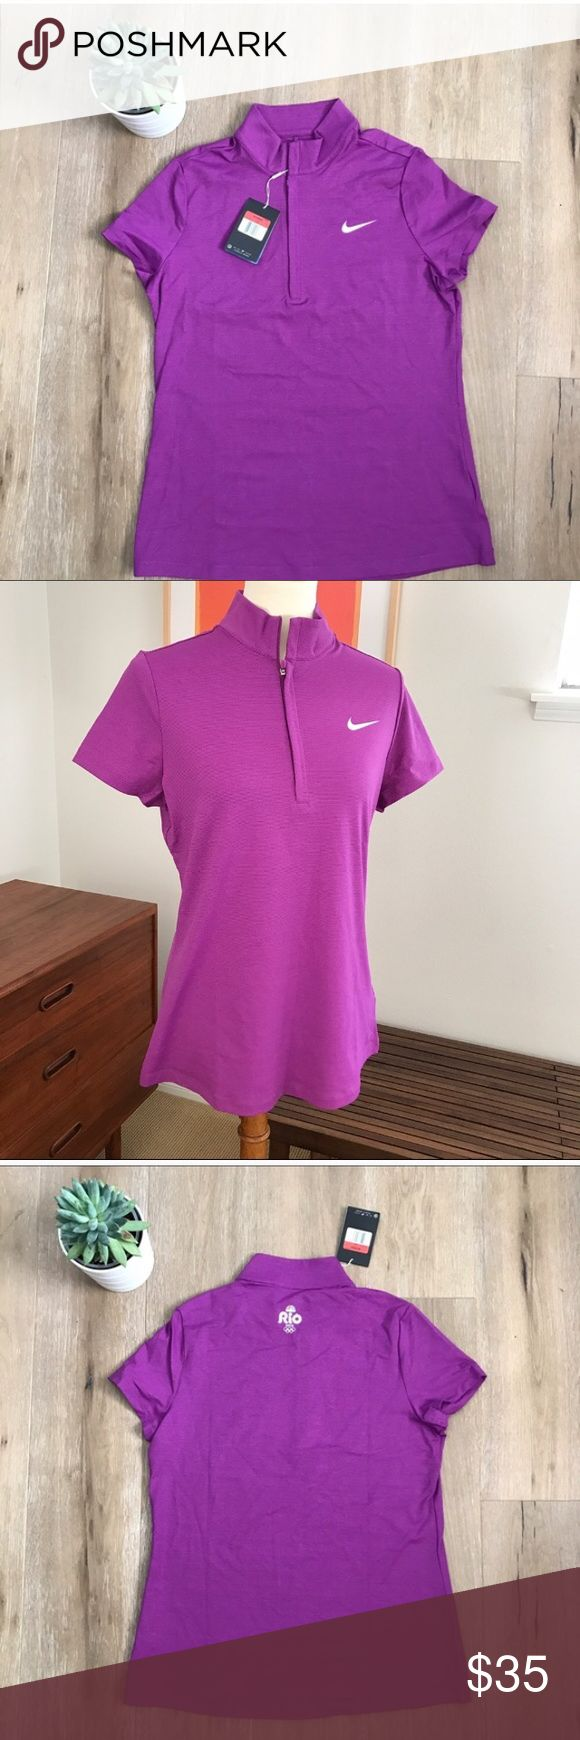 """NWT Nike Golf shirt 👚 from Rio 2016 Olympic Games NWT Nike Golf shirt 👚 from Rio 2016 Olympic games. Size Large. Zipper collar. Collectors item. Bust 19"""" Length 26"""". Bundle and save! Nike Tops Tees - Short Sleeve"""